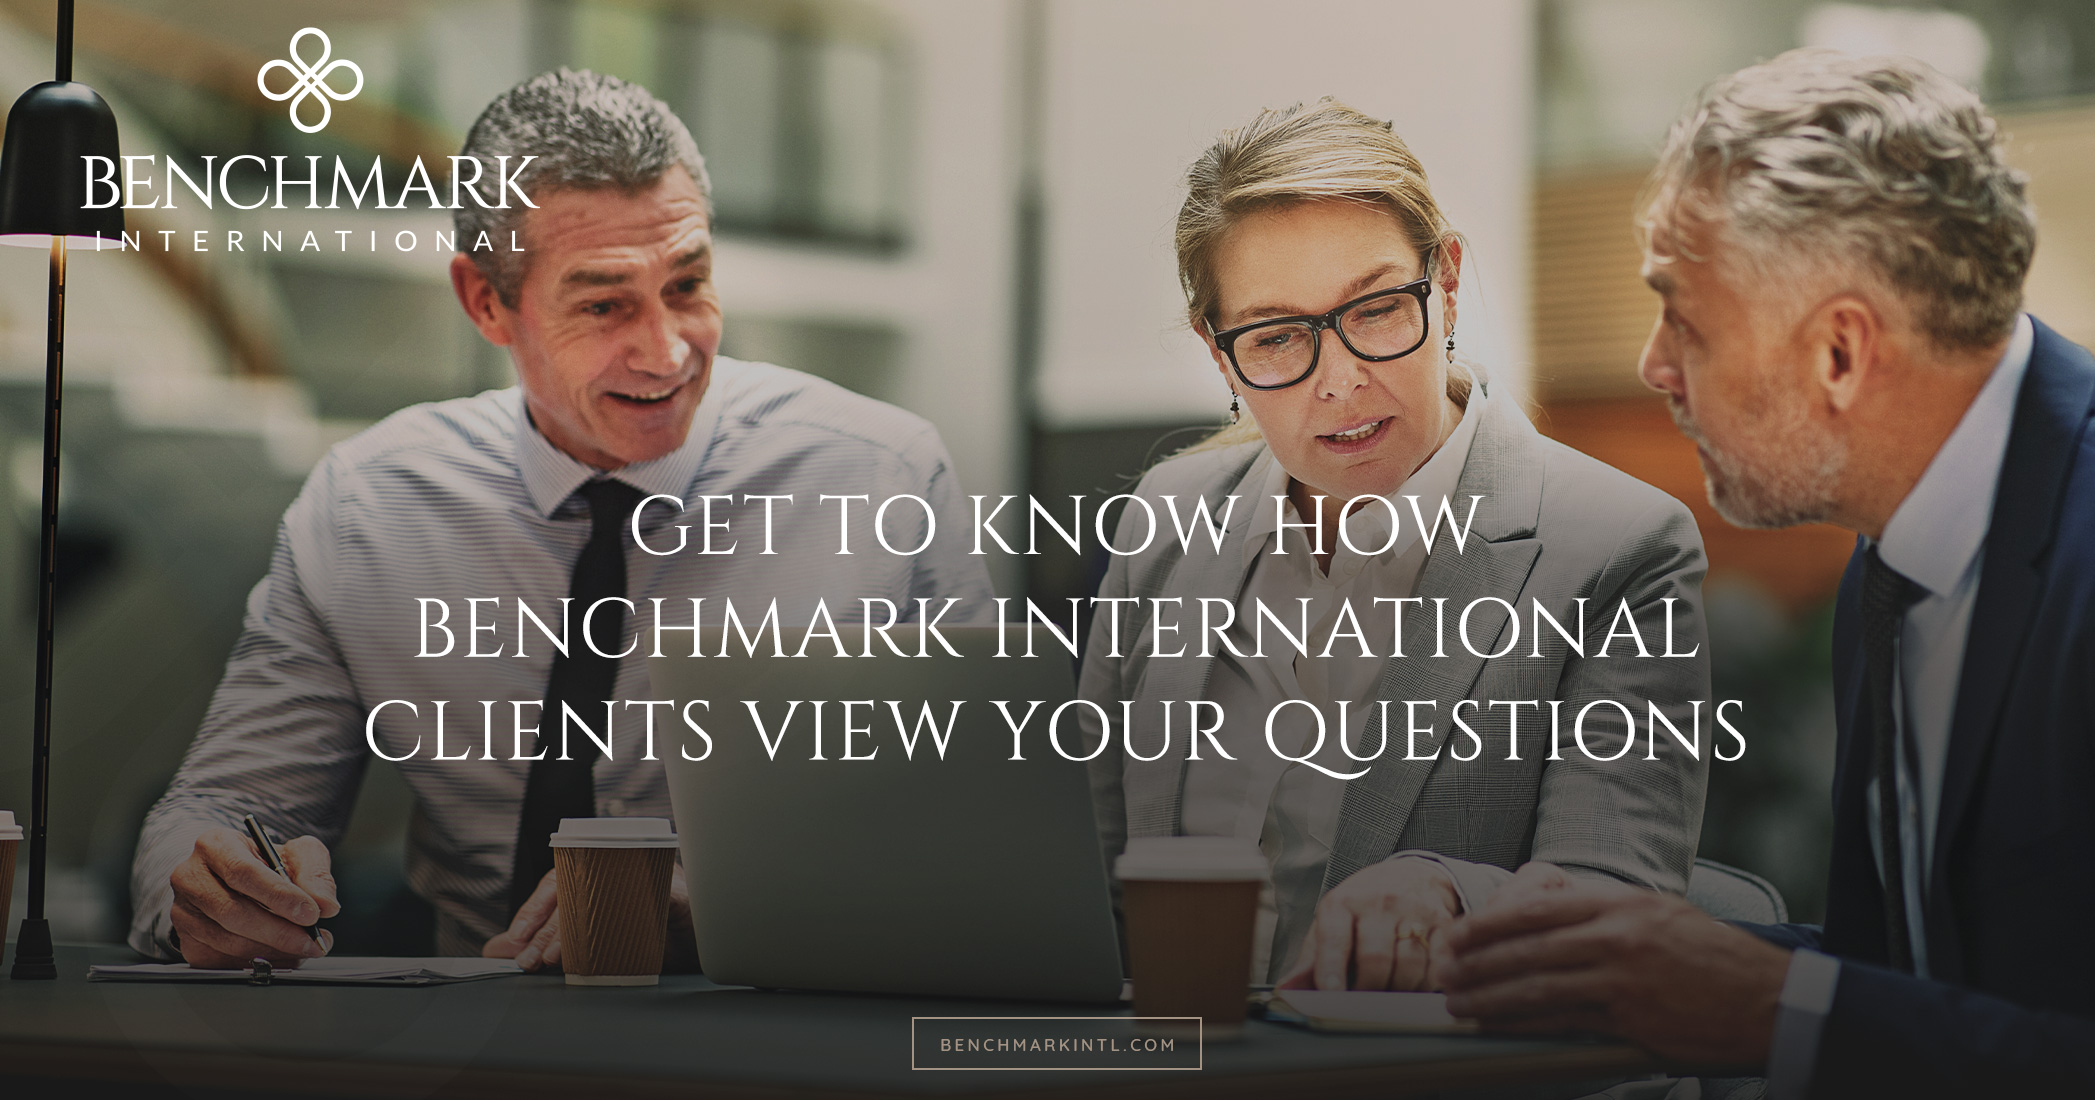 Get To Know How Benchmark International Clients View Your Questions